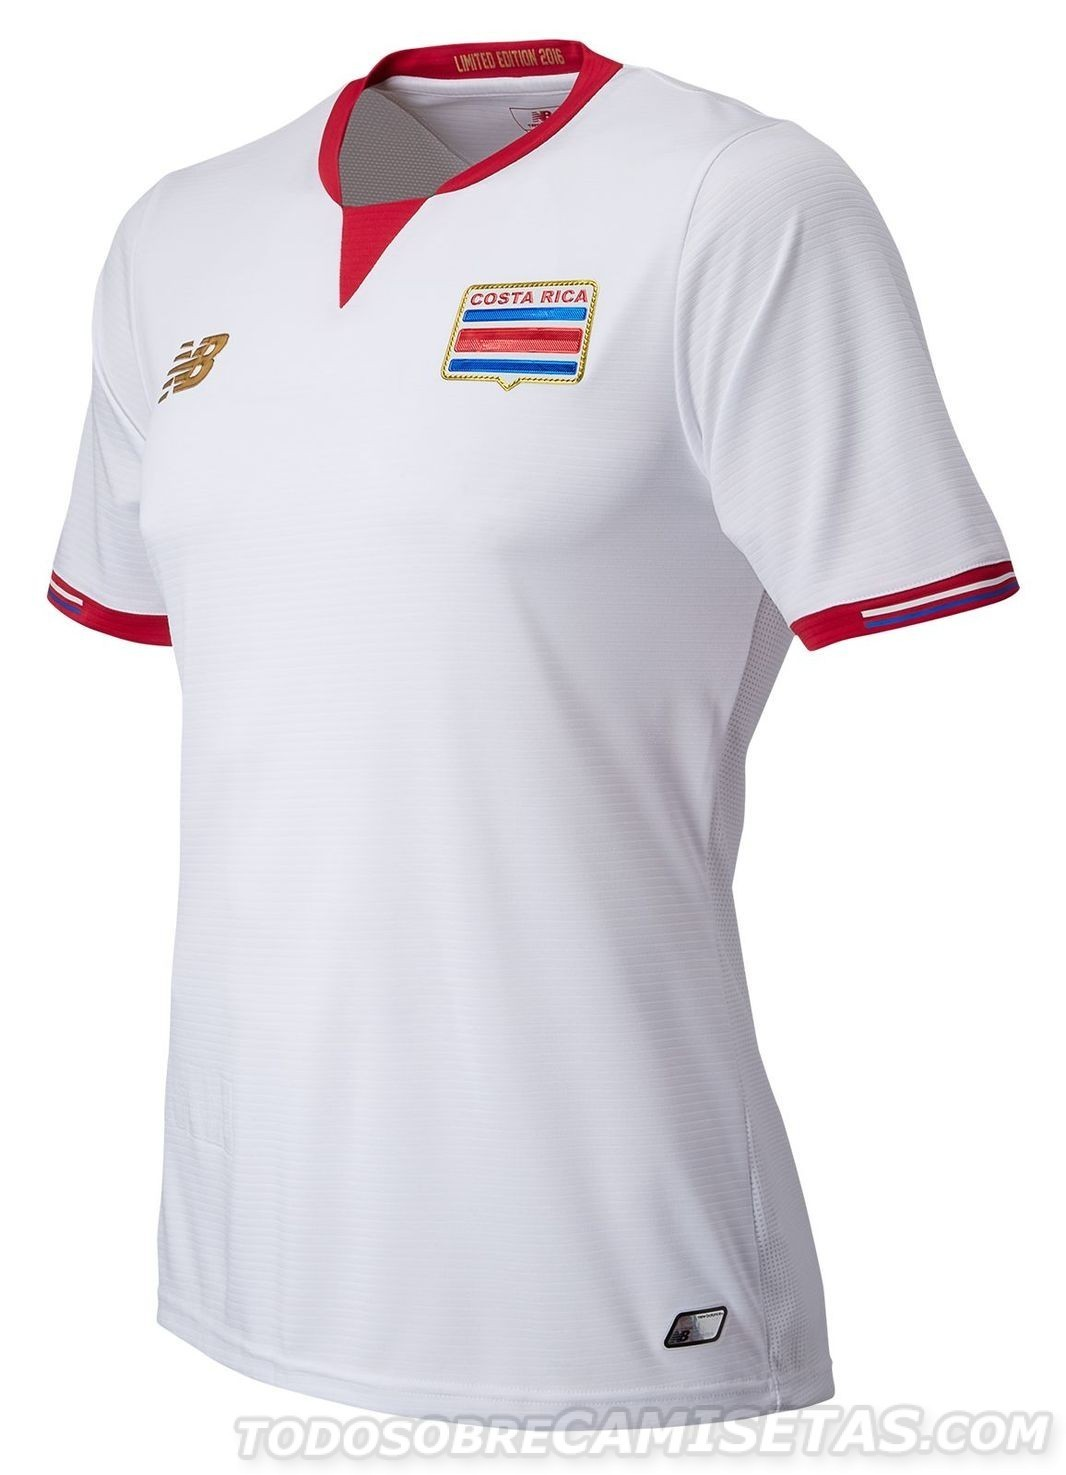 Costa-Rica-16-17-NEW-BALANCE-new-away-kit-1.jpg